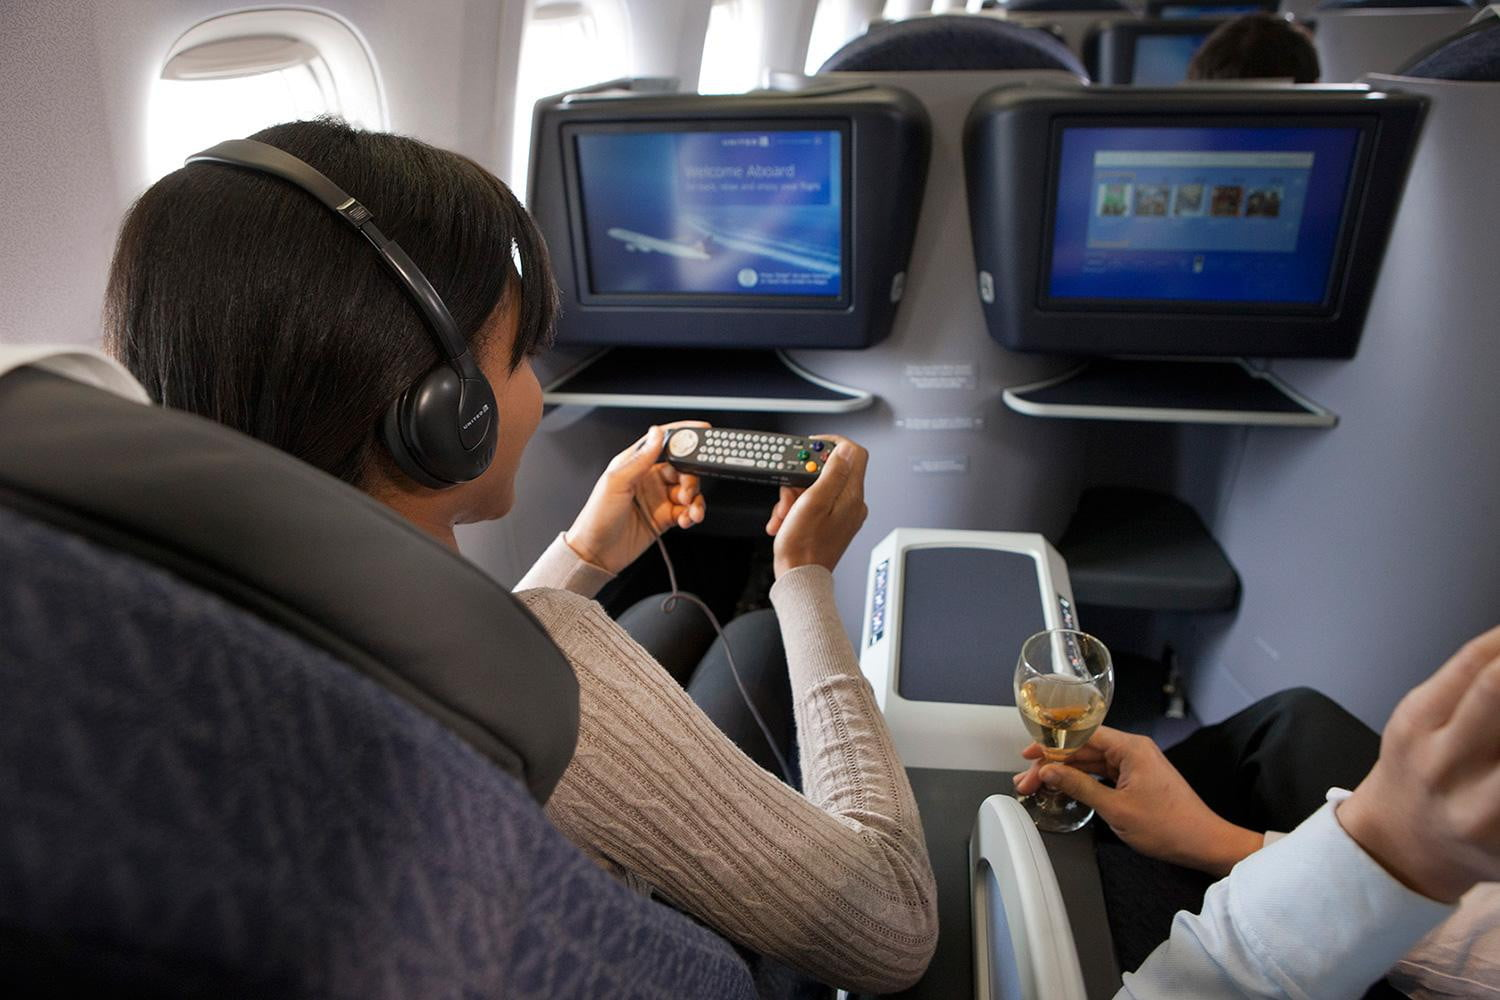 Which Airline Has The Most Cutting Edge Technology